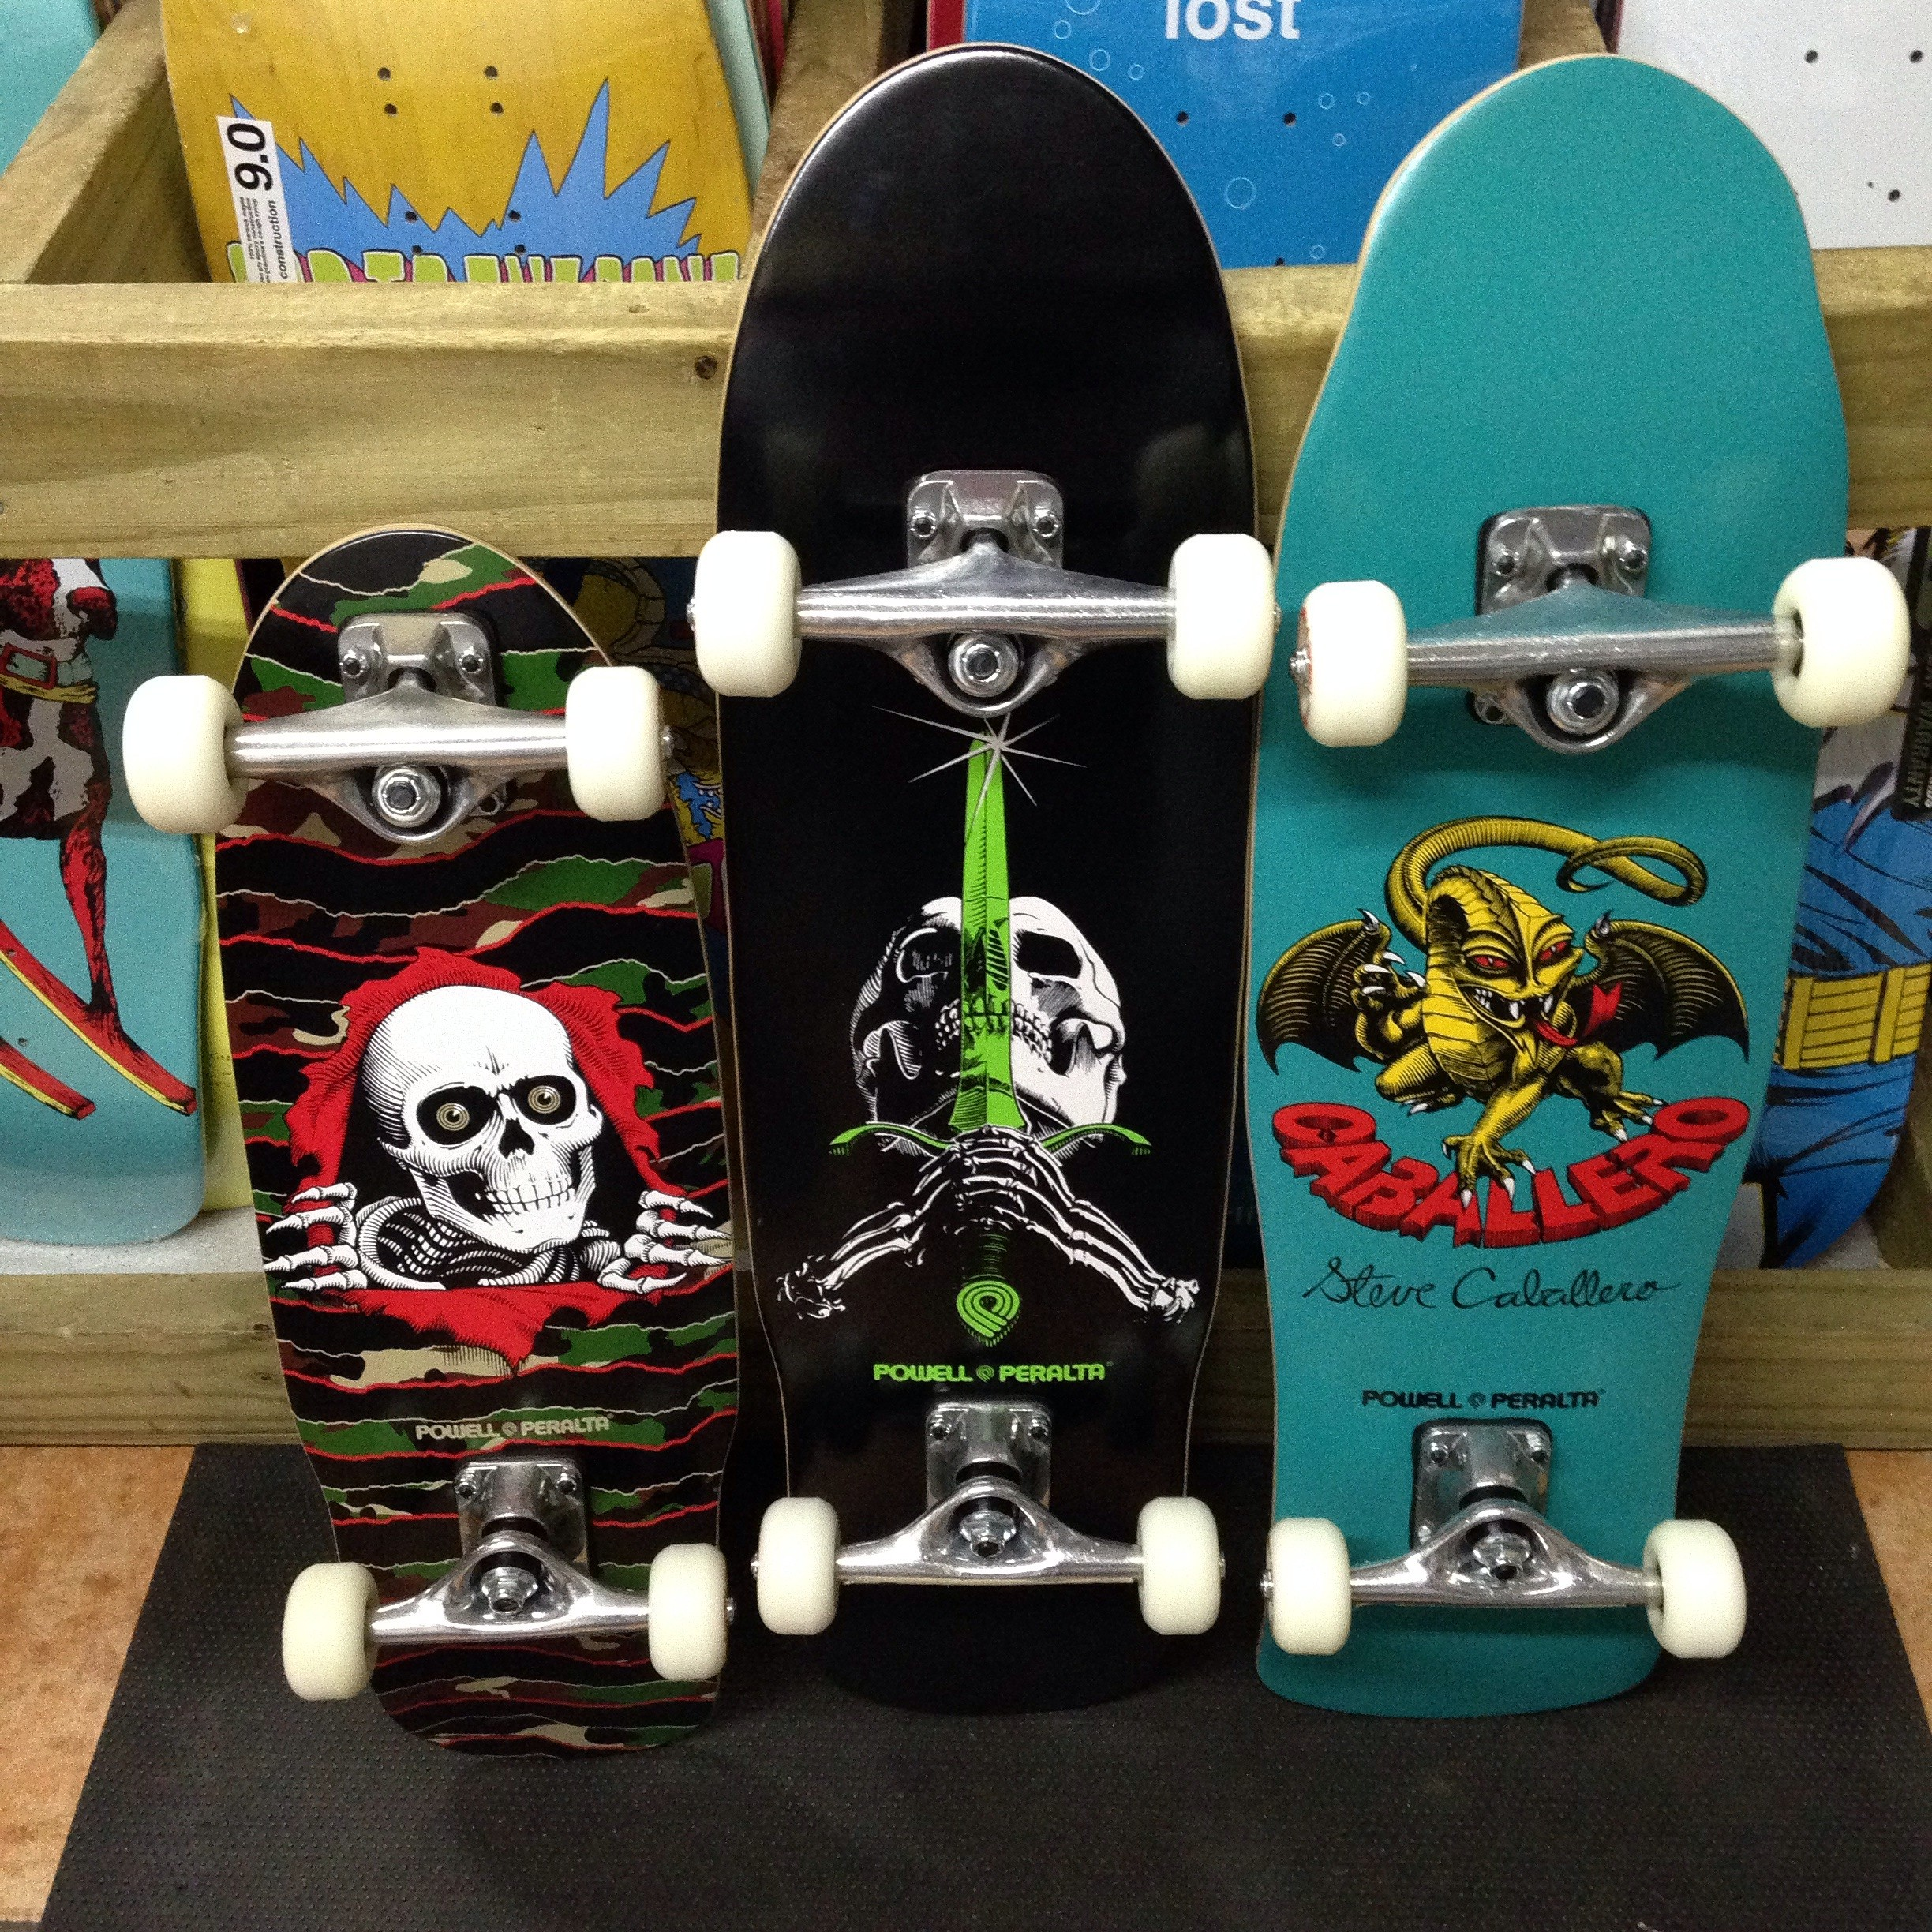 "Powell-Peralta old school mini completes (7.5"" x 24"", 8.0"" x 30"", 8.0"" x 29.5"")"